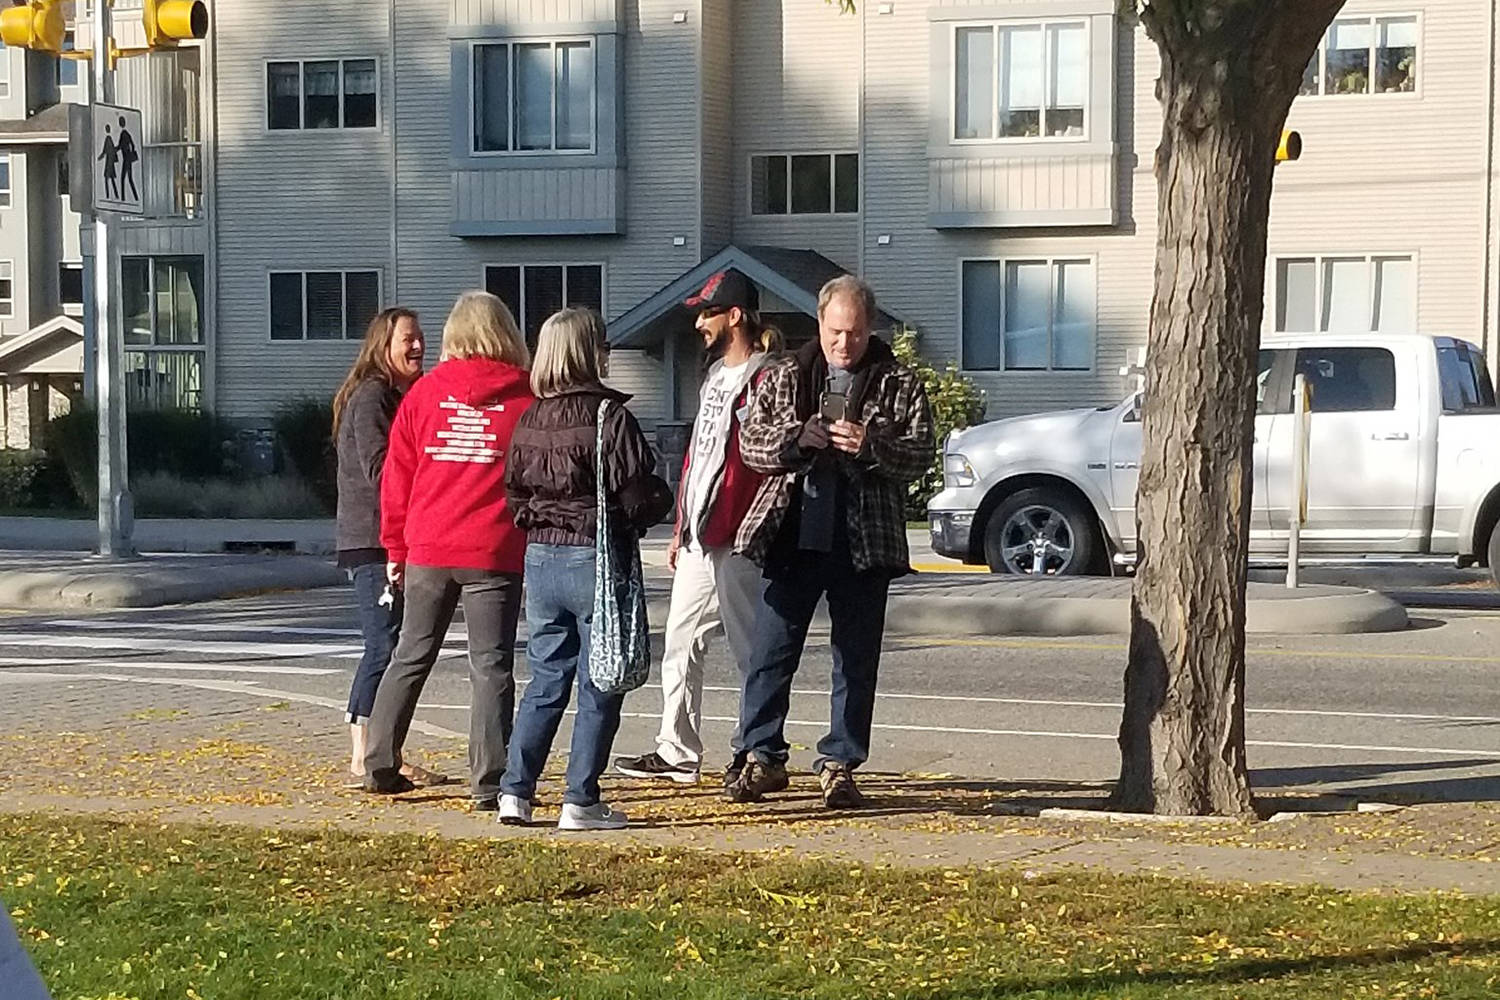 A small group of anti-mask protesters gathered on the sidewalk near Rutland Middle School and Rutland Senior Secondary on Monday, Oct. 5. (Contributed)